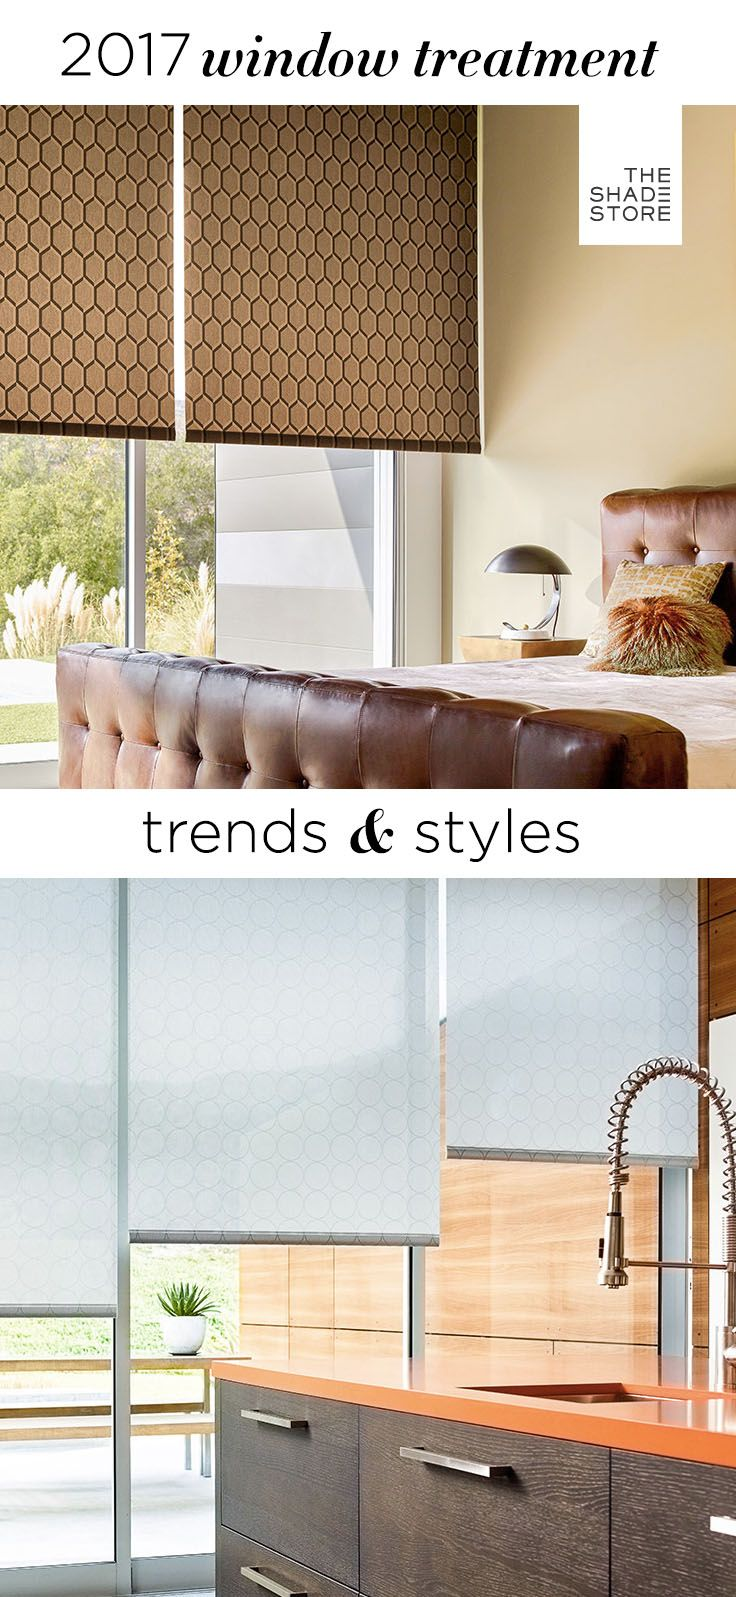 2017 Window Treatment Trends: Popular Styles